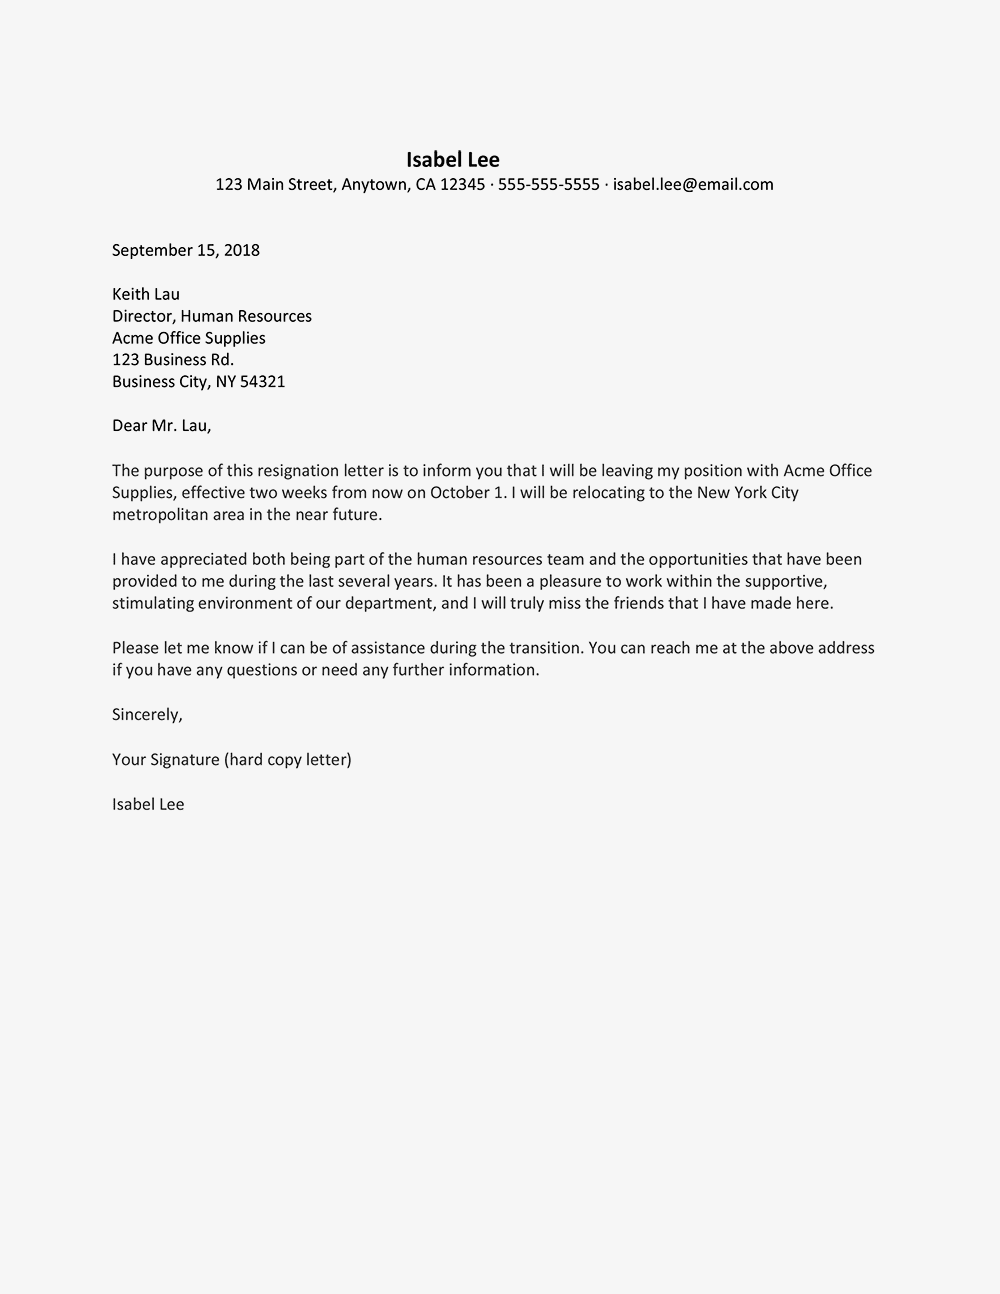 Resignation Letter Due To Relocation Examples